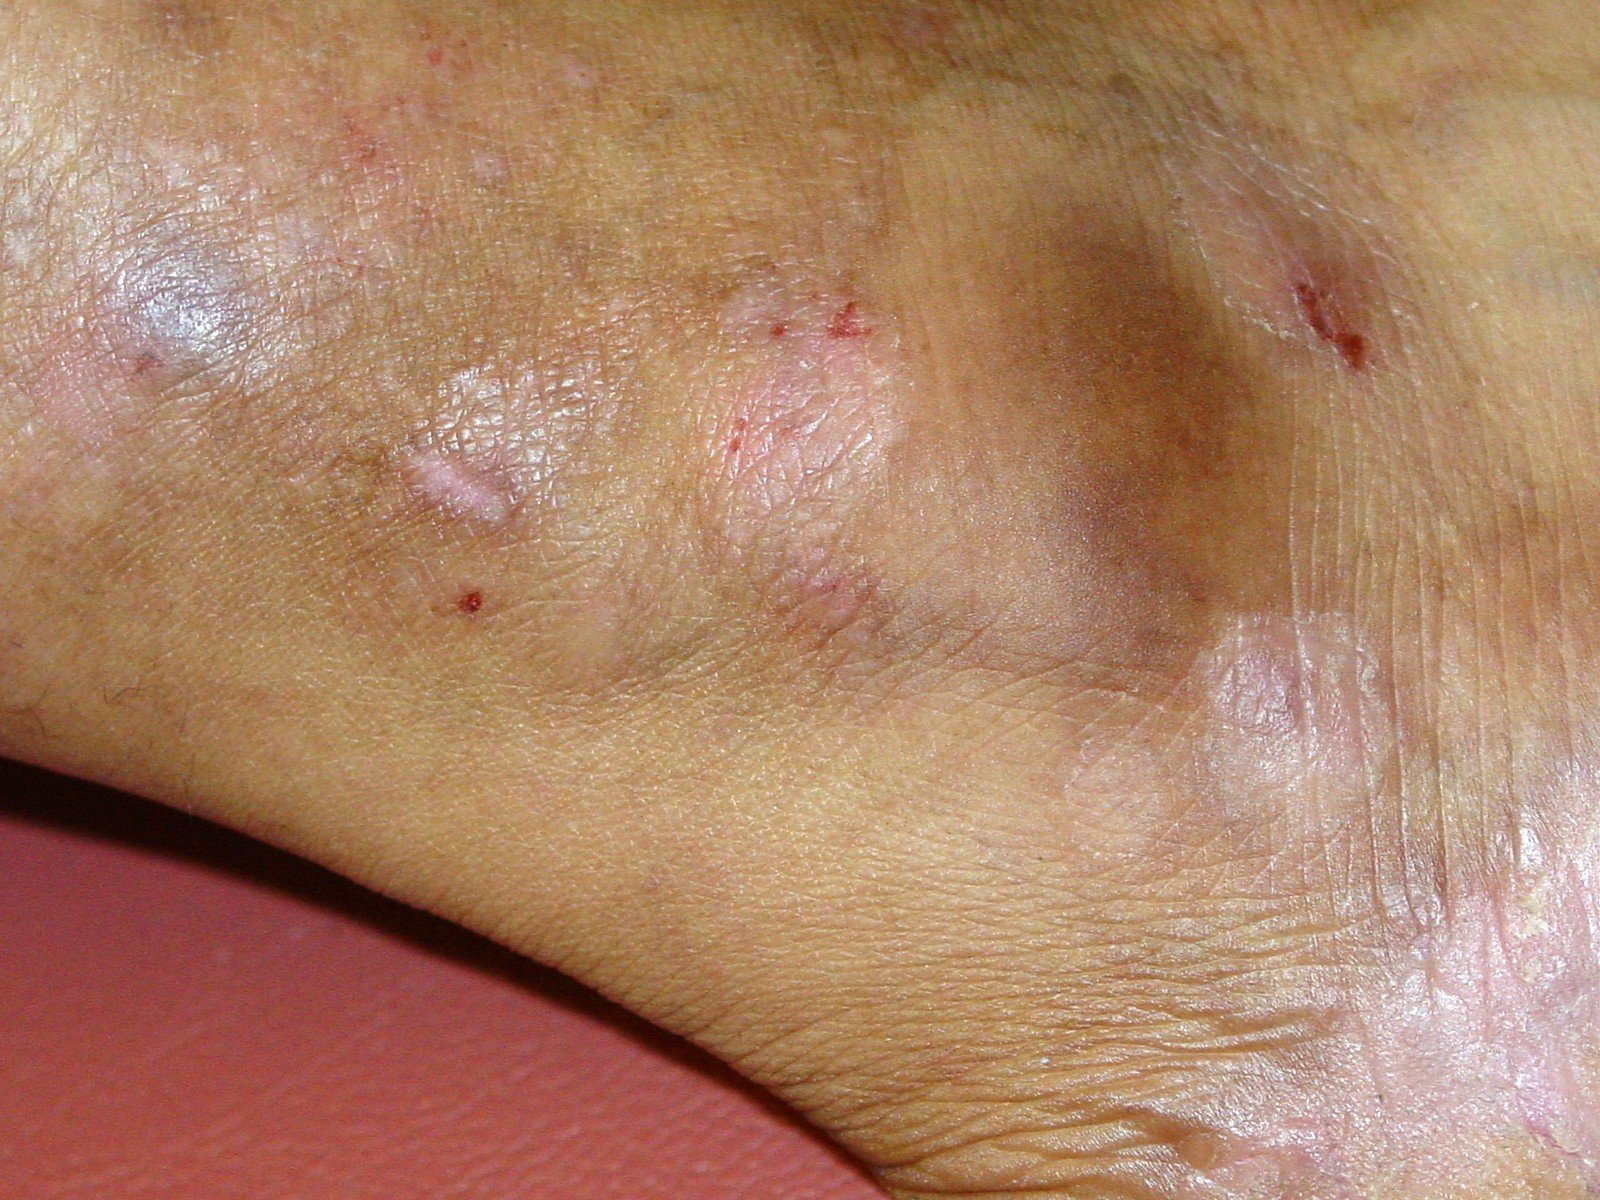 Psoriasis-Leg & Ankle-with 10+ years of allopathic treatment